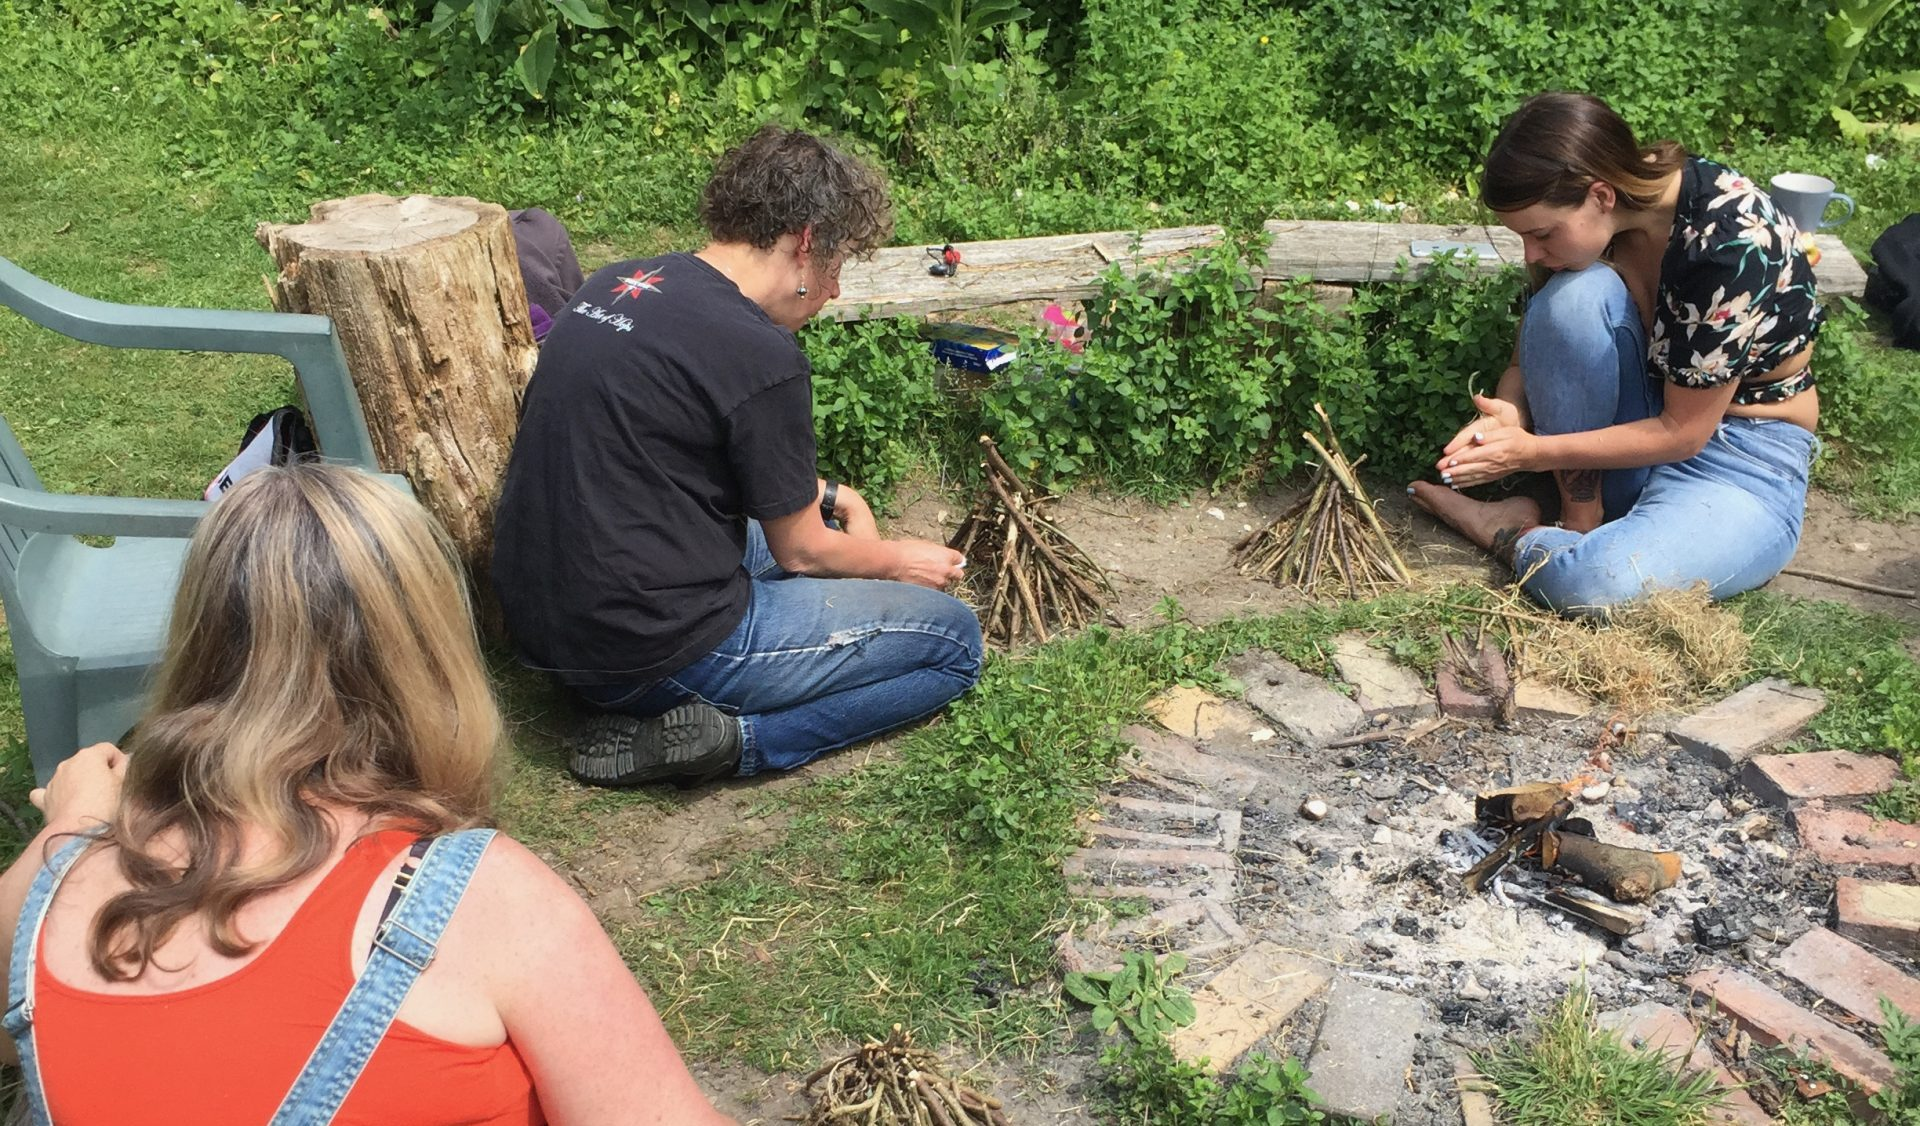 people learning fire lighting